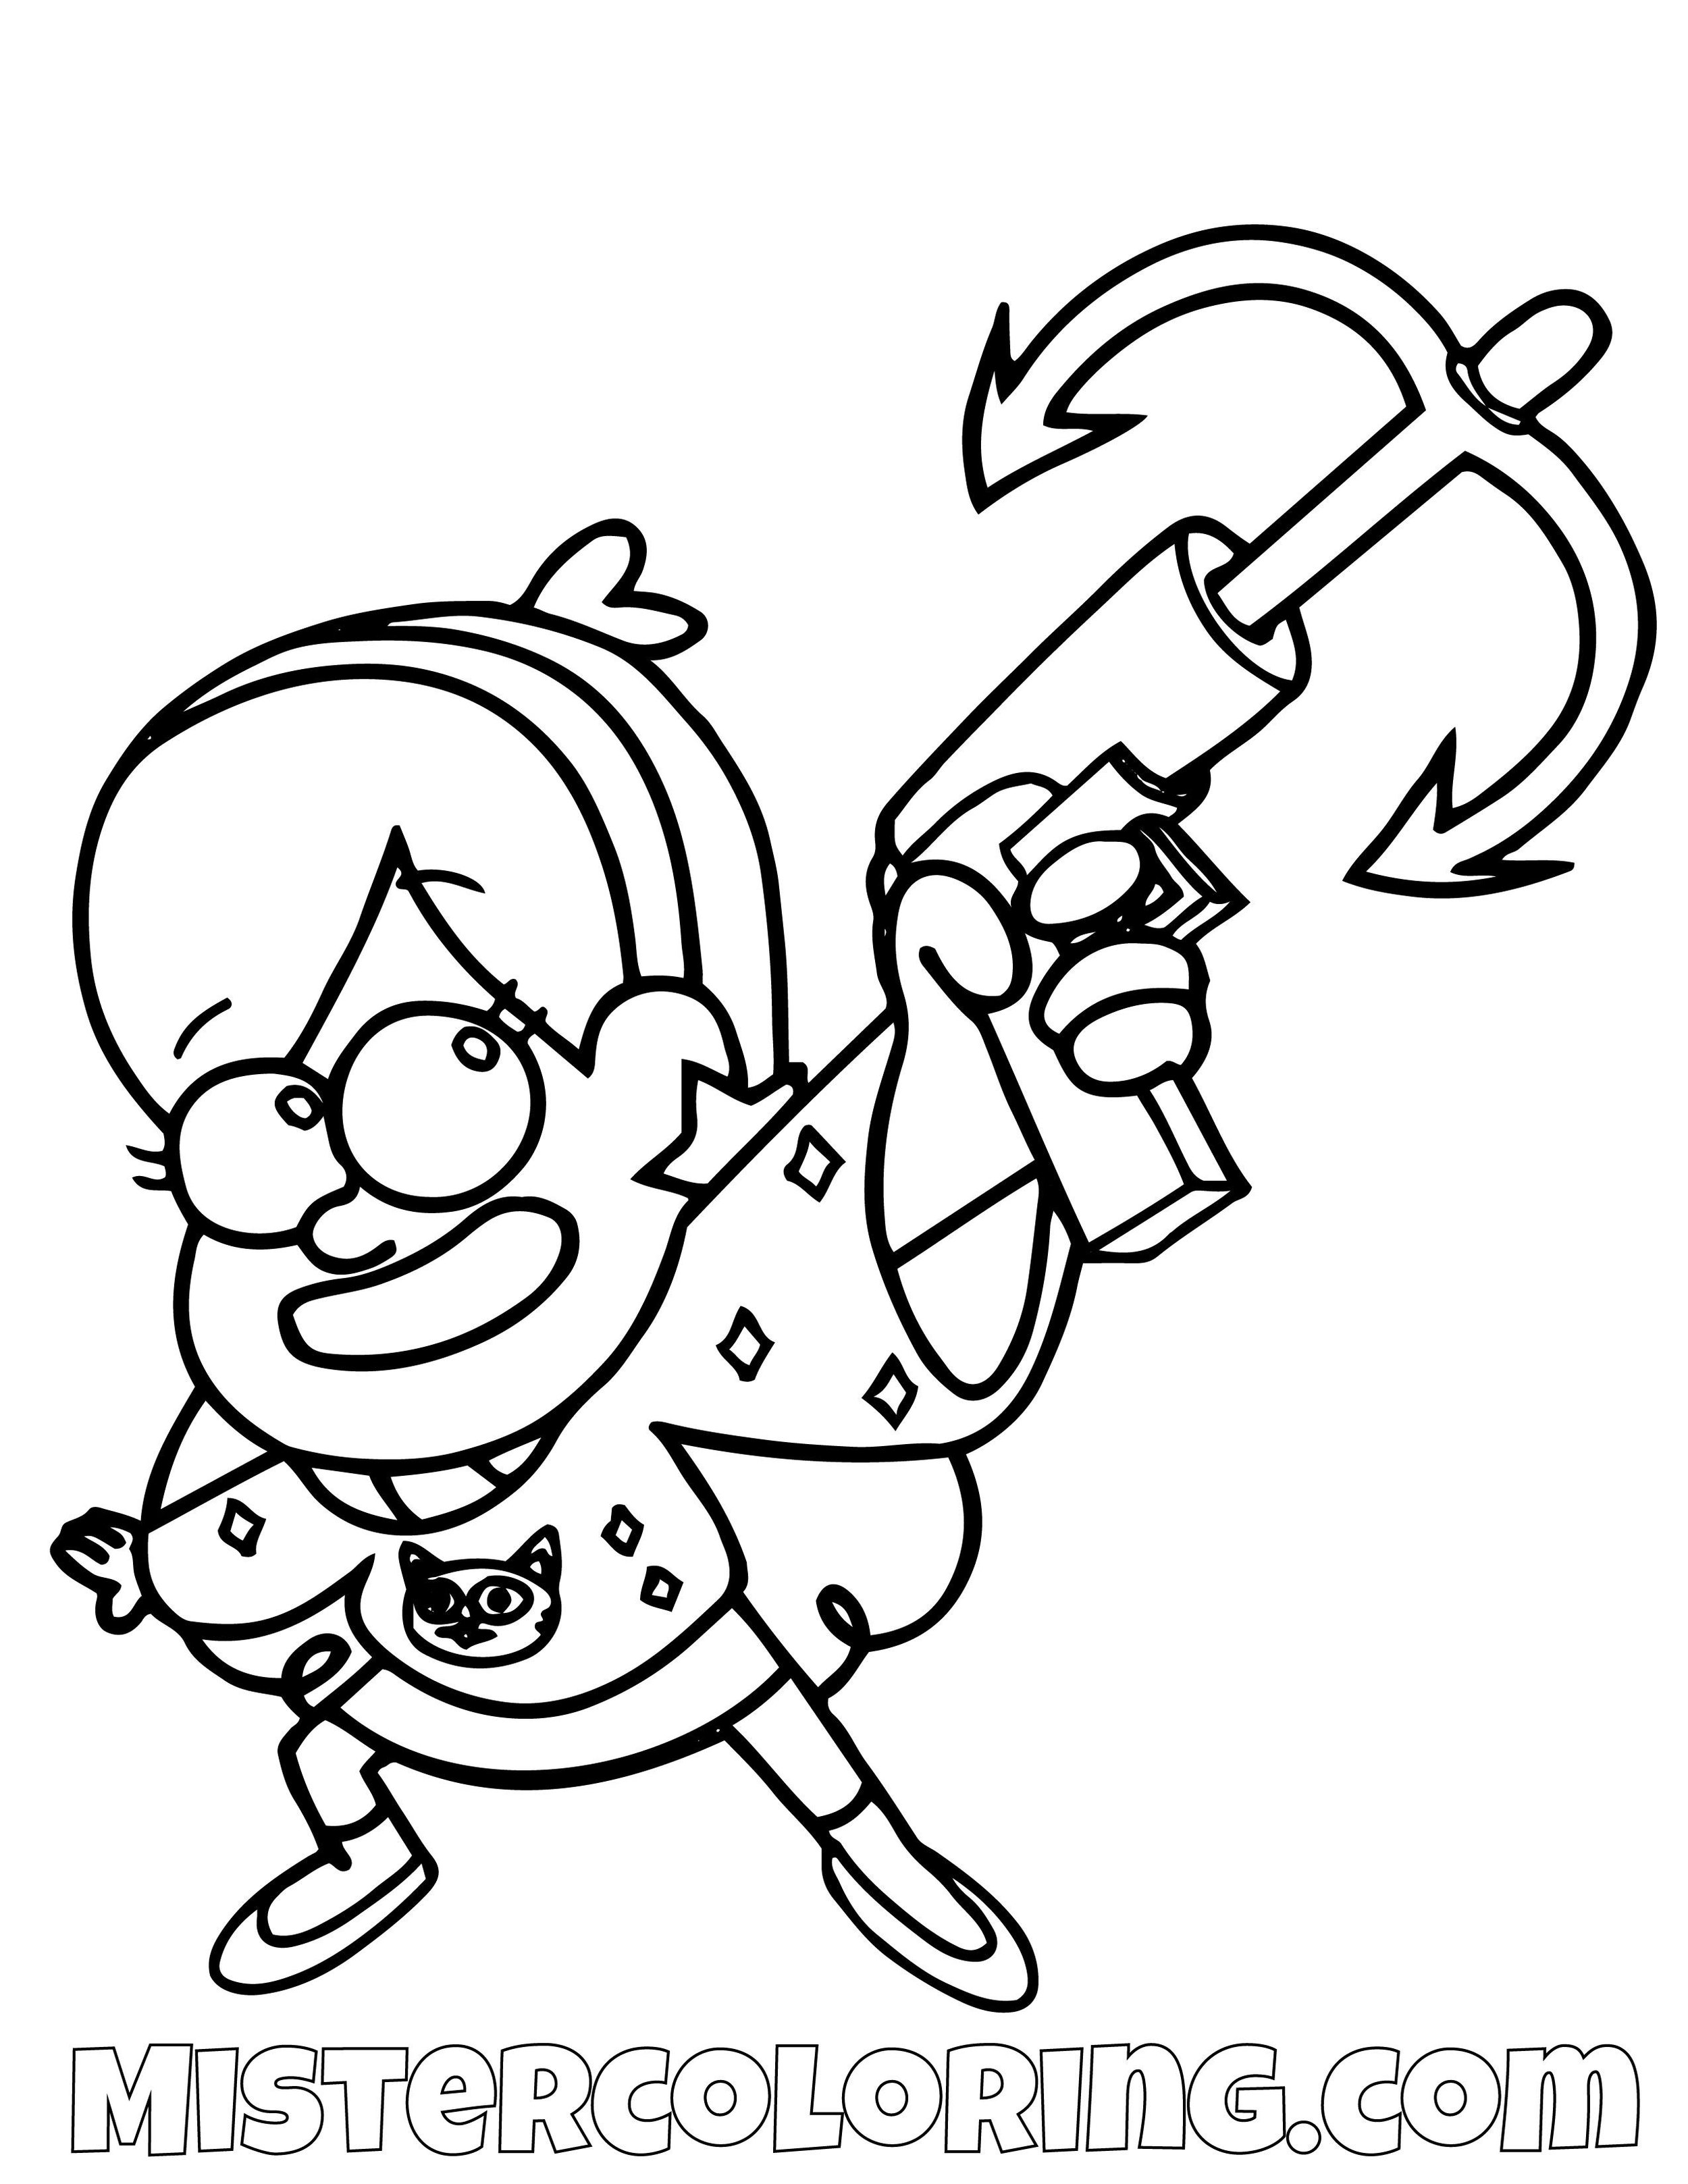 Mabel Pines With Grappling Hook Gravity Falls Coloring Pages